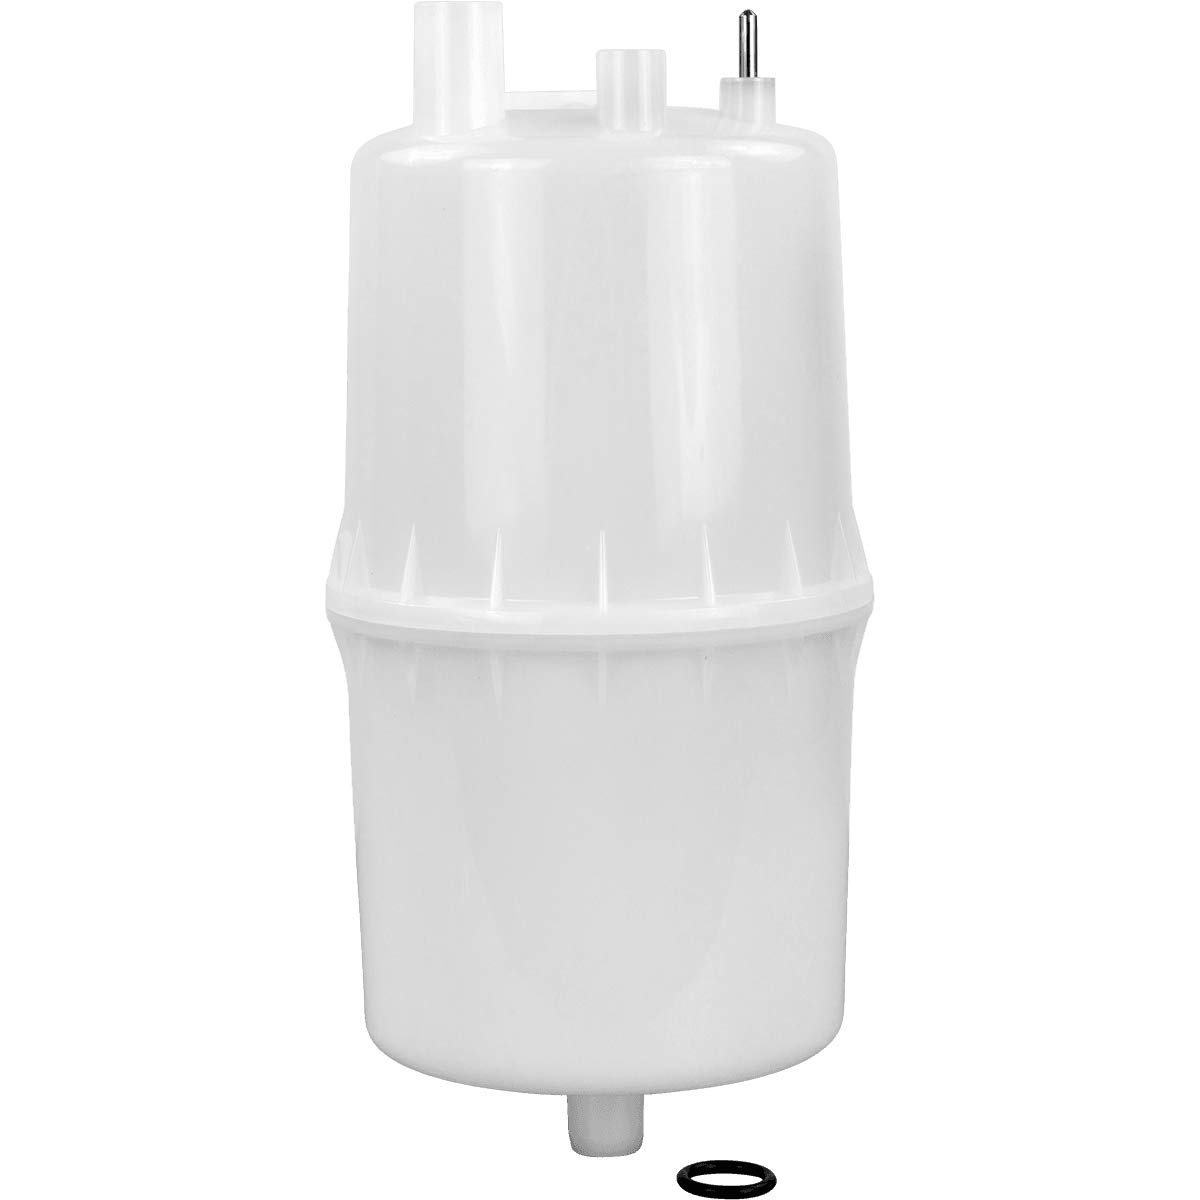 Aprilaire 202A Steam Humidifier Cylinder (Equivalent to Nortec 202 and Honeywell HM700ACYL2) by Aprilaire